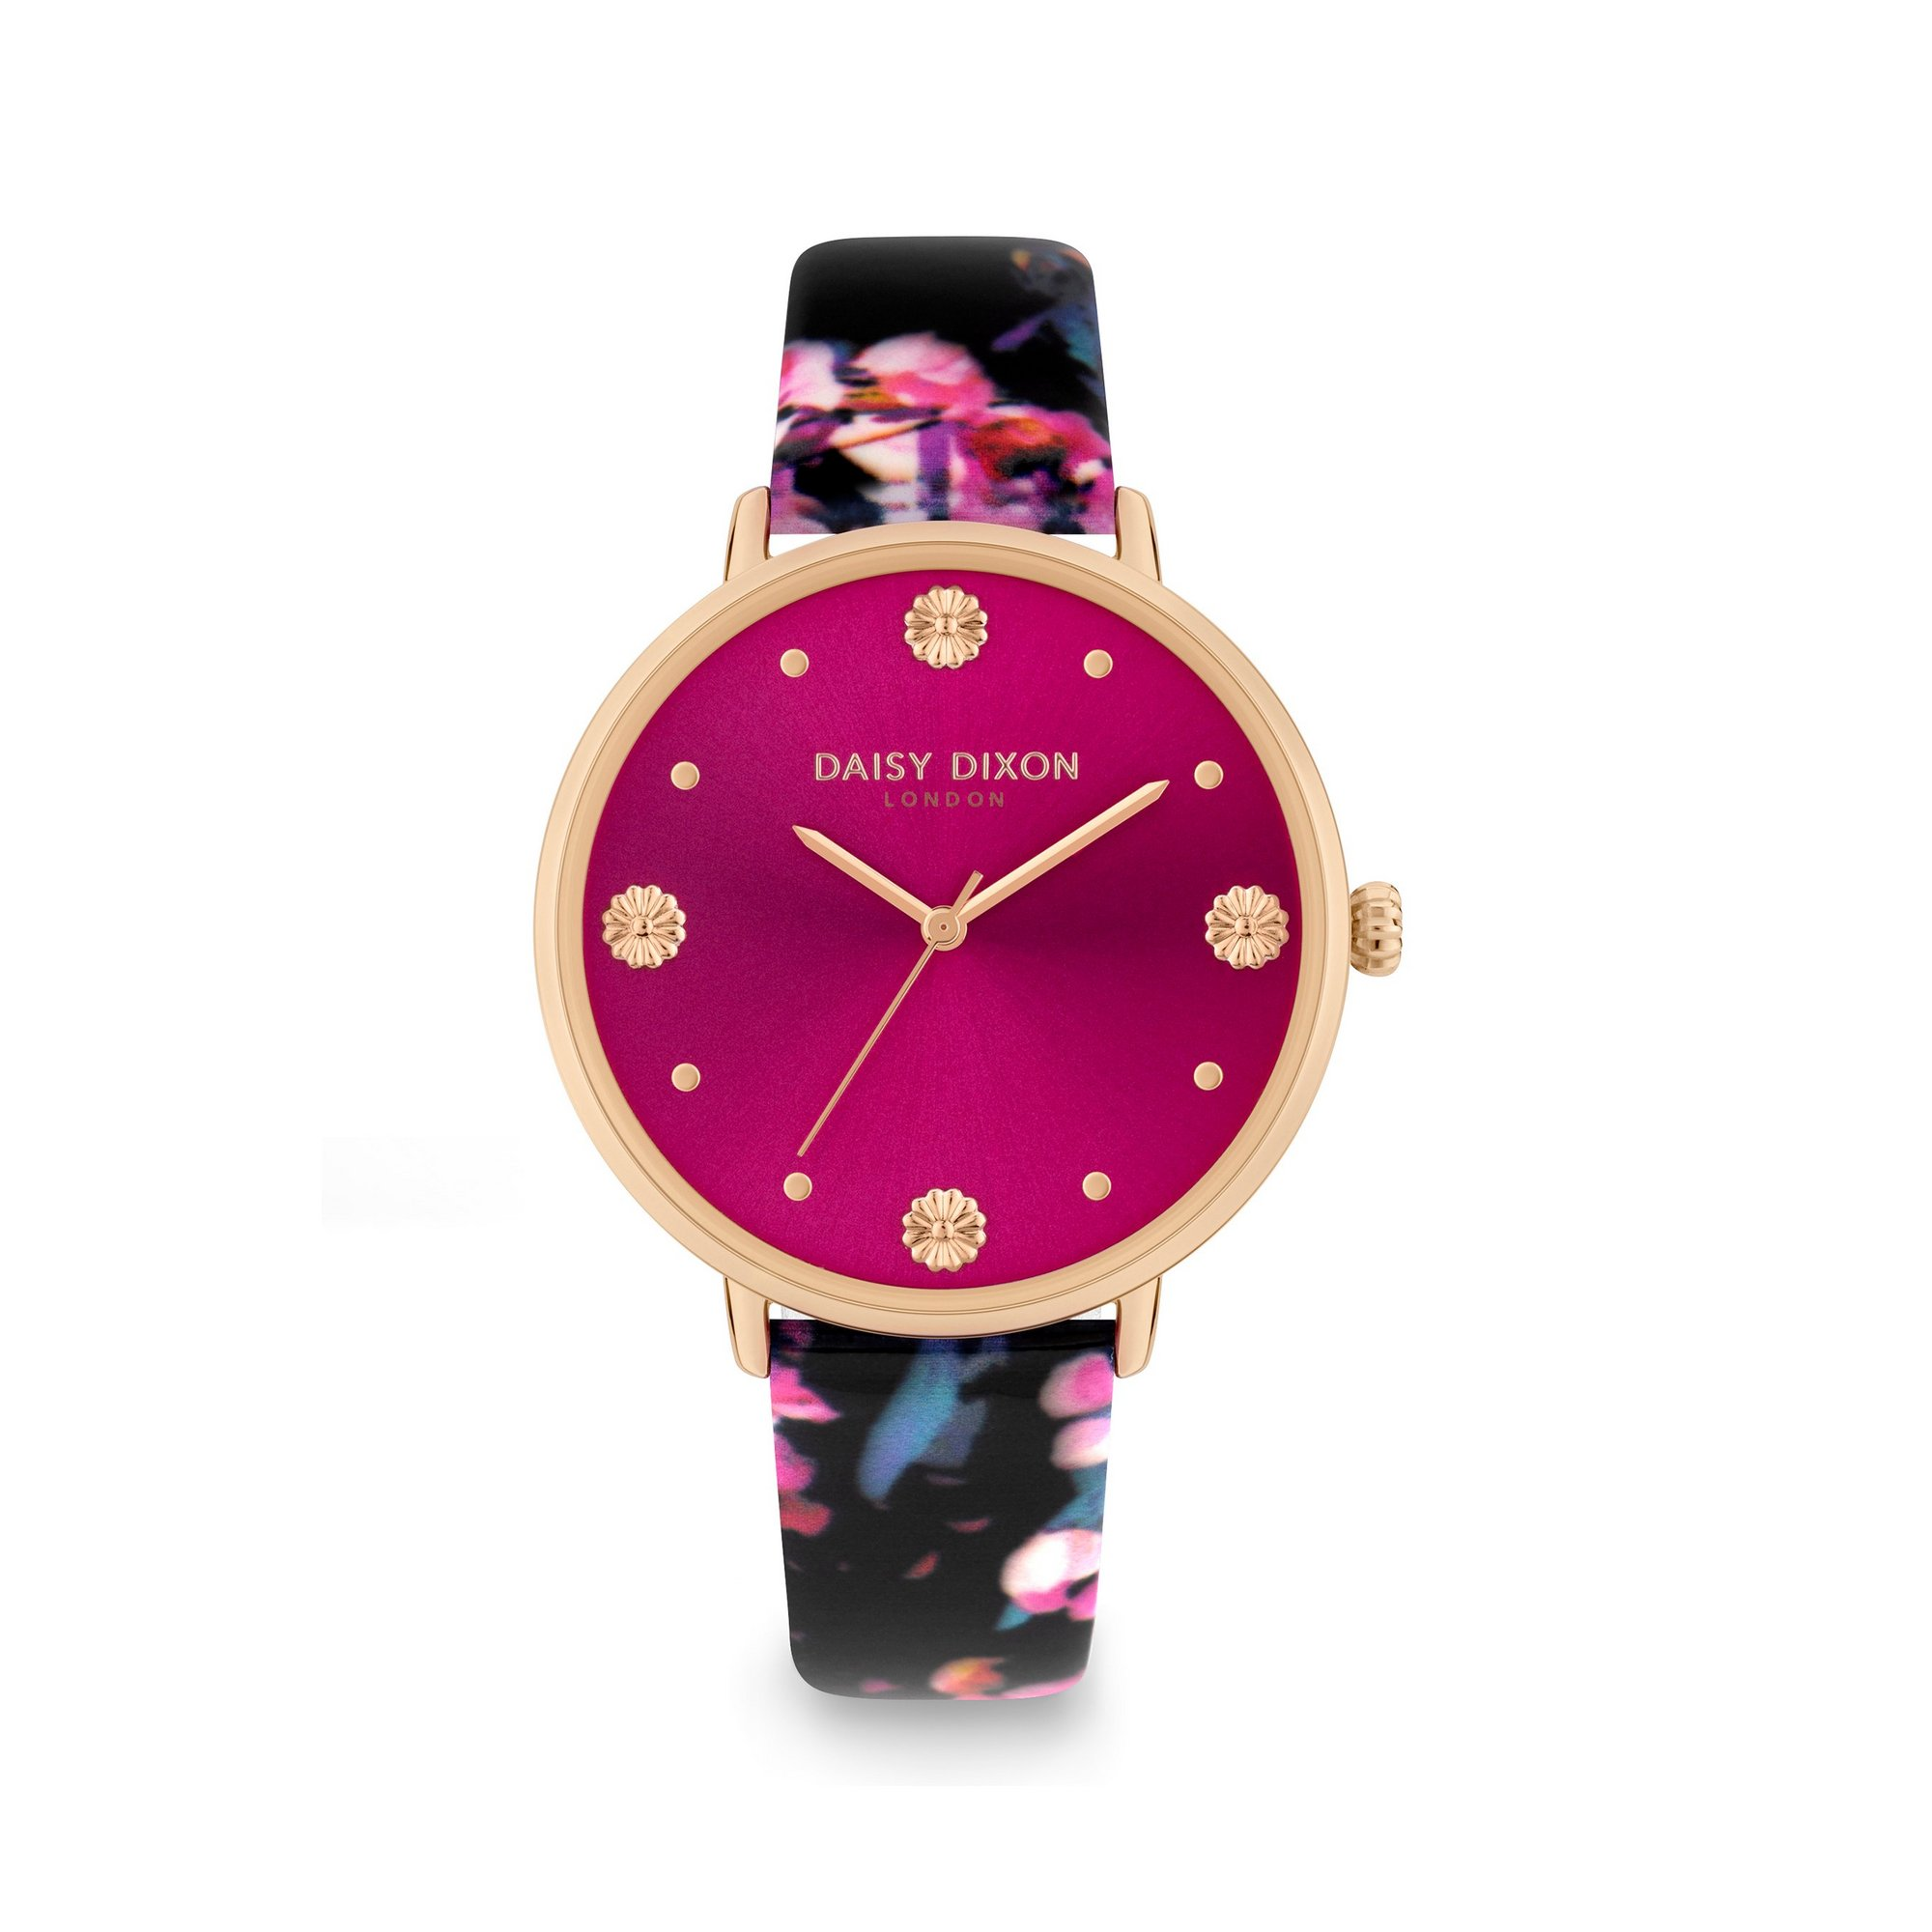 Image of Daisy Dixon Kendall 11 Black Floral Print Strap Watch With Deep P...